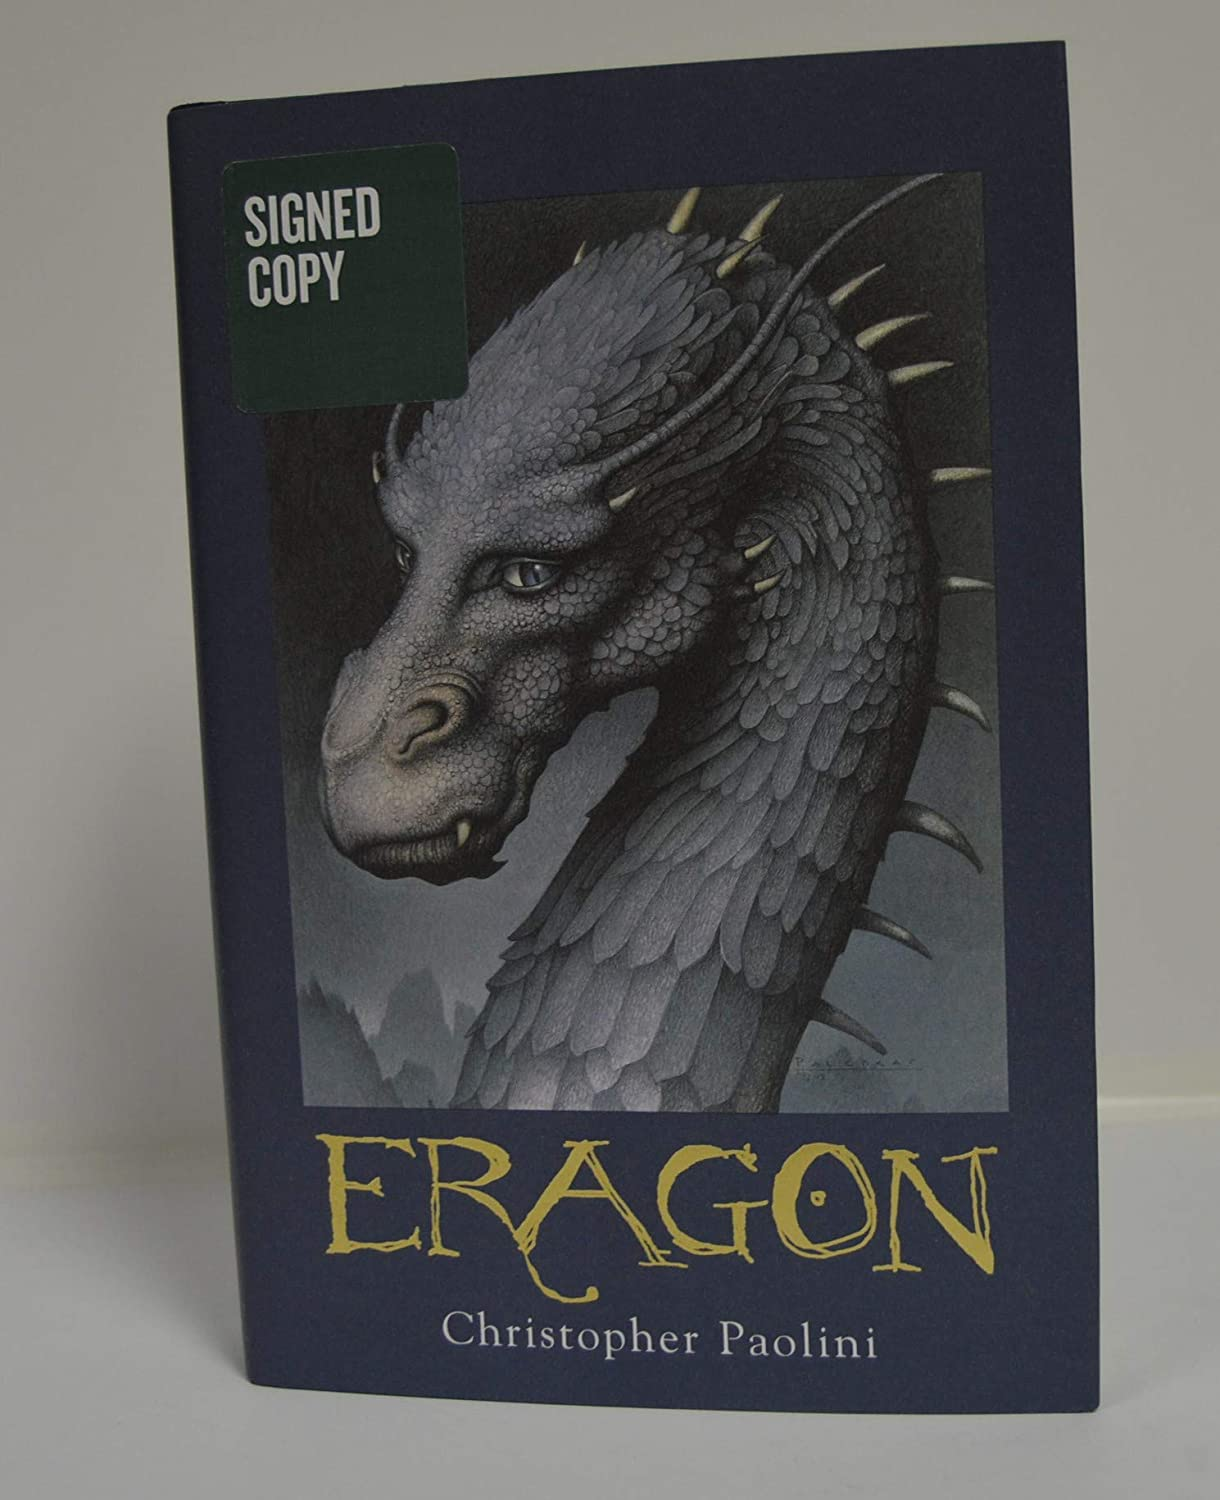 CHRISTOPHER PAOLINI signed Eragon (Inheritance, Book 1) HARDCOVER Book FIRST EDITION